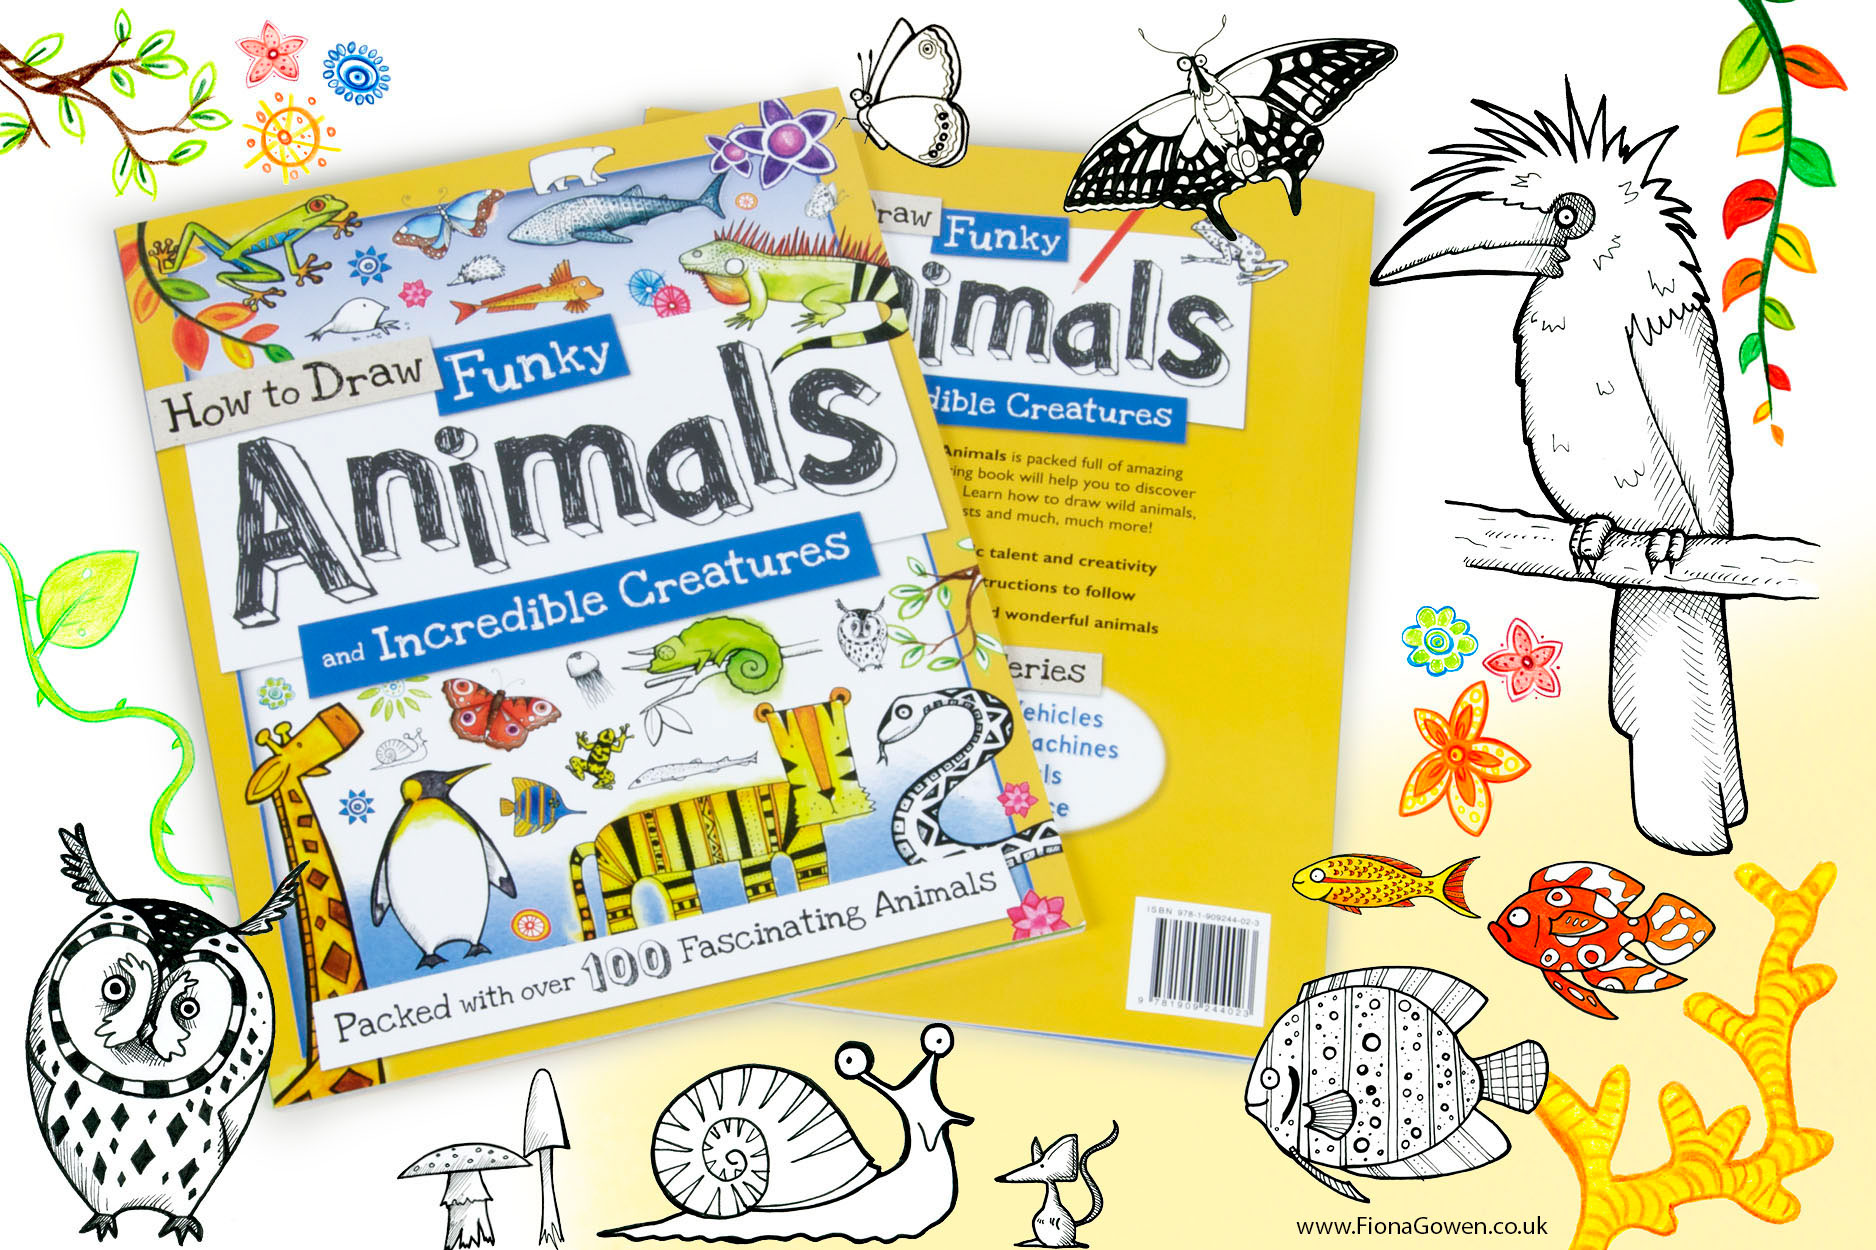 How to Draw Animals Book illustrated by Fiona Gowen. Featured illustrations include a bird, fish, butterflied and a snail.